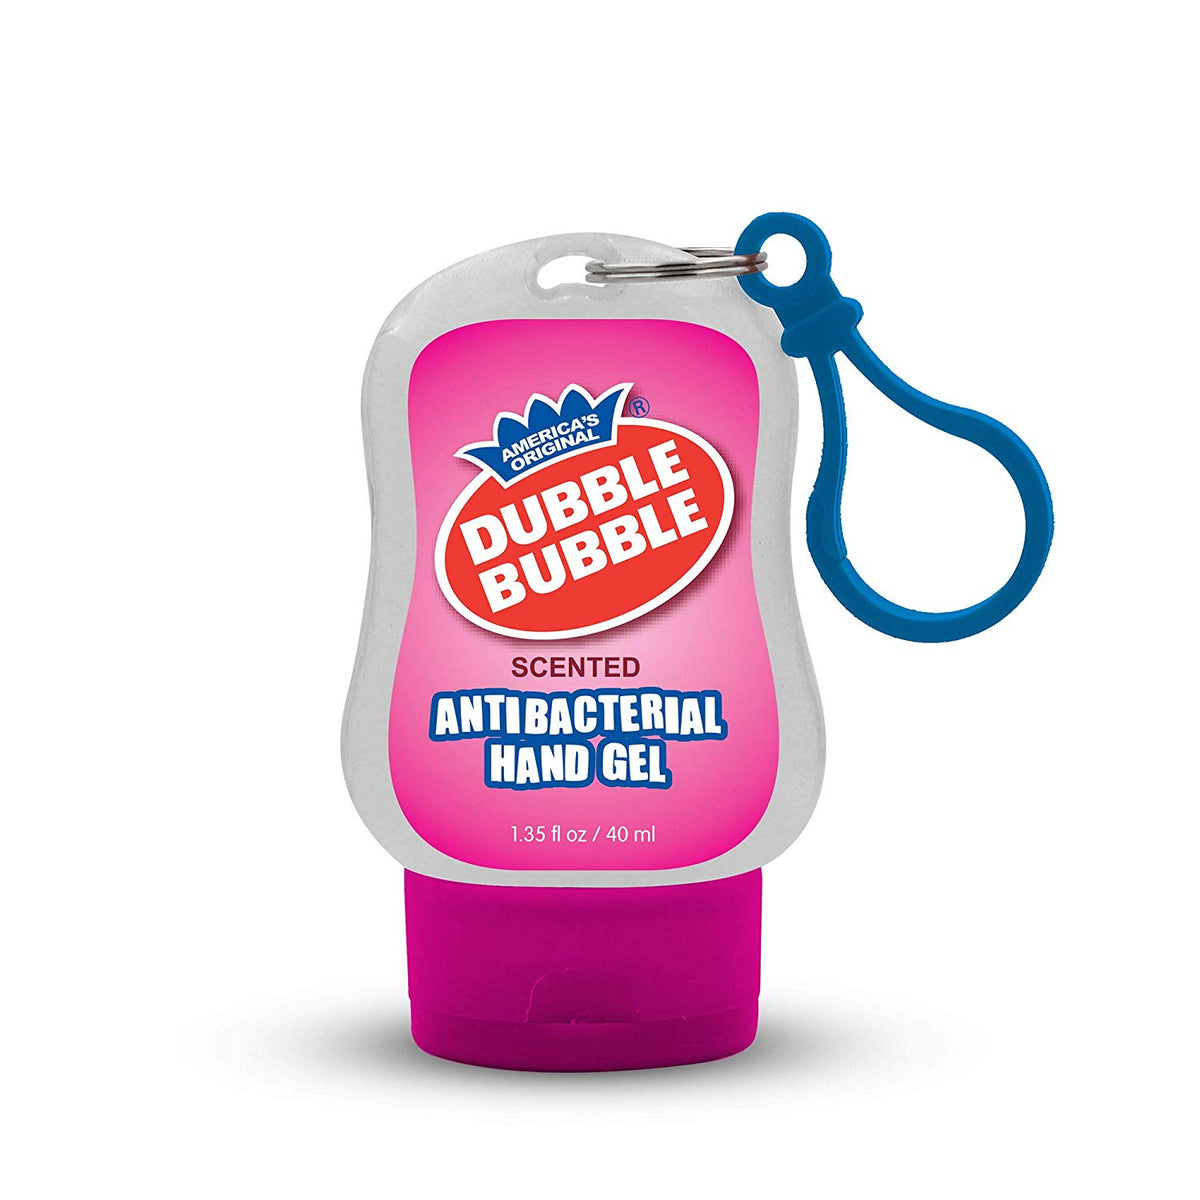 Hand Sanitizer, 40ml  Dubble Bubble Scented